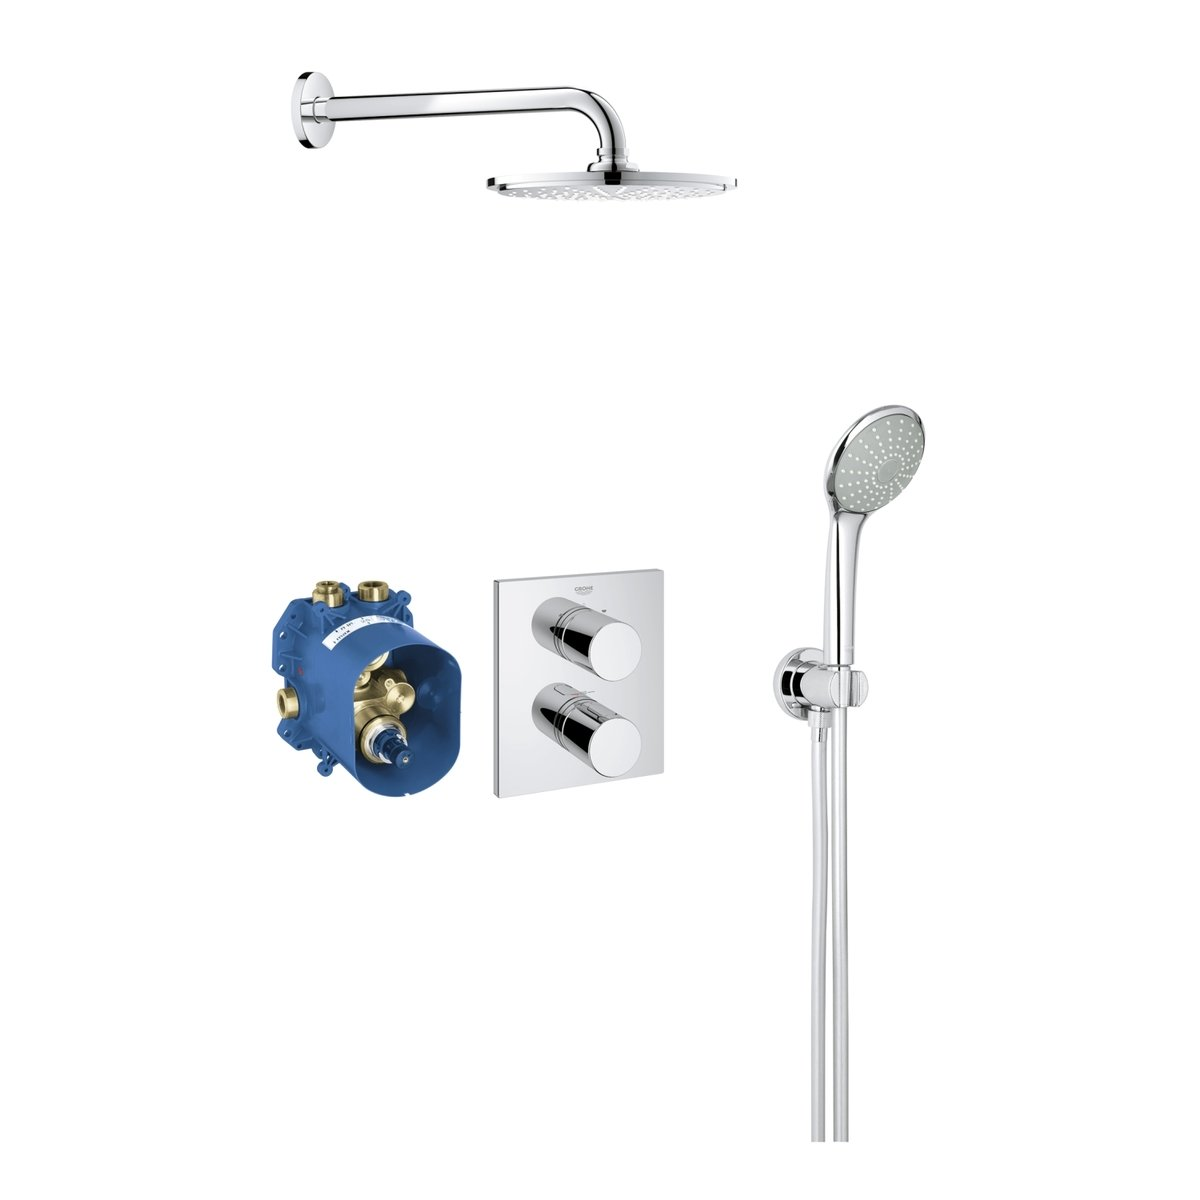 grohe grohtherm 3000 cosmopolitan perfect shower set compleet met hand en hoofddouche met inbouw. Black Bedroom Furniture Sets. Home Design Ideas